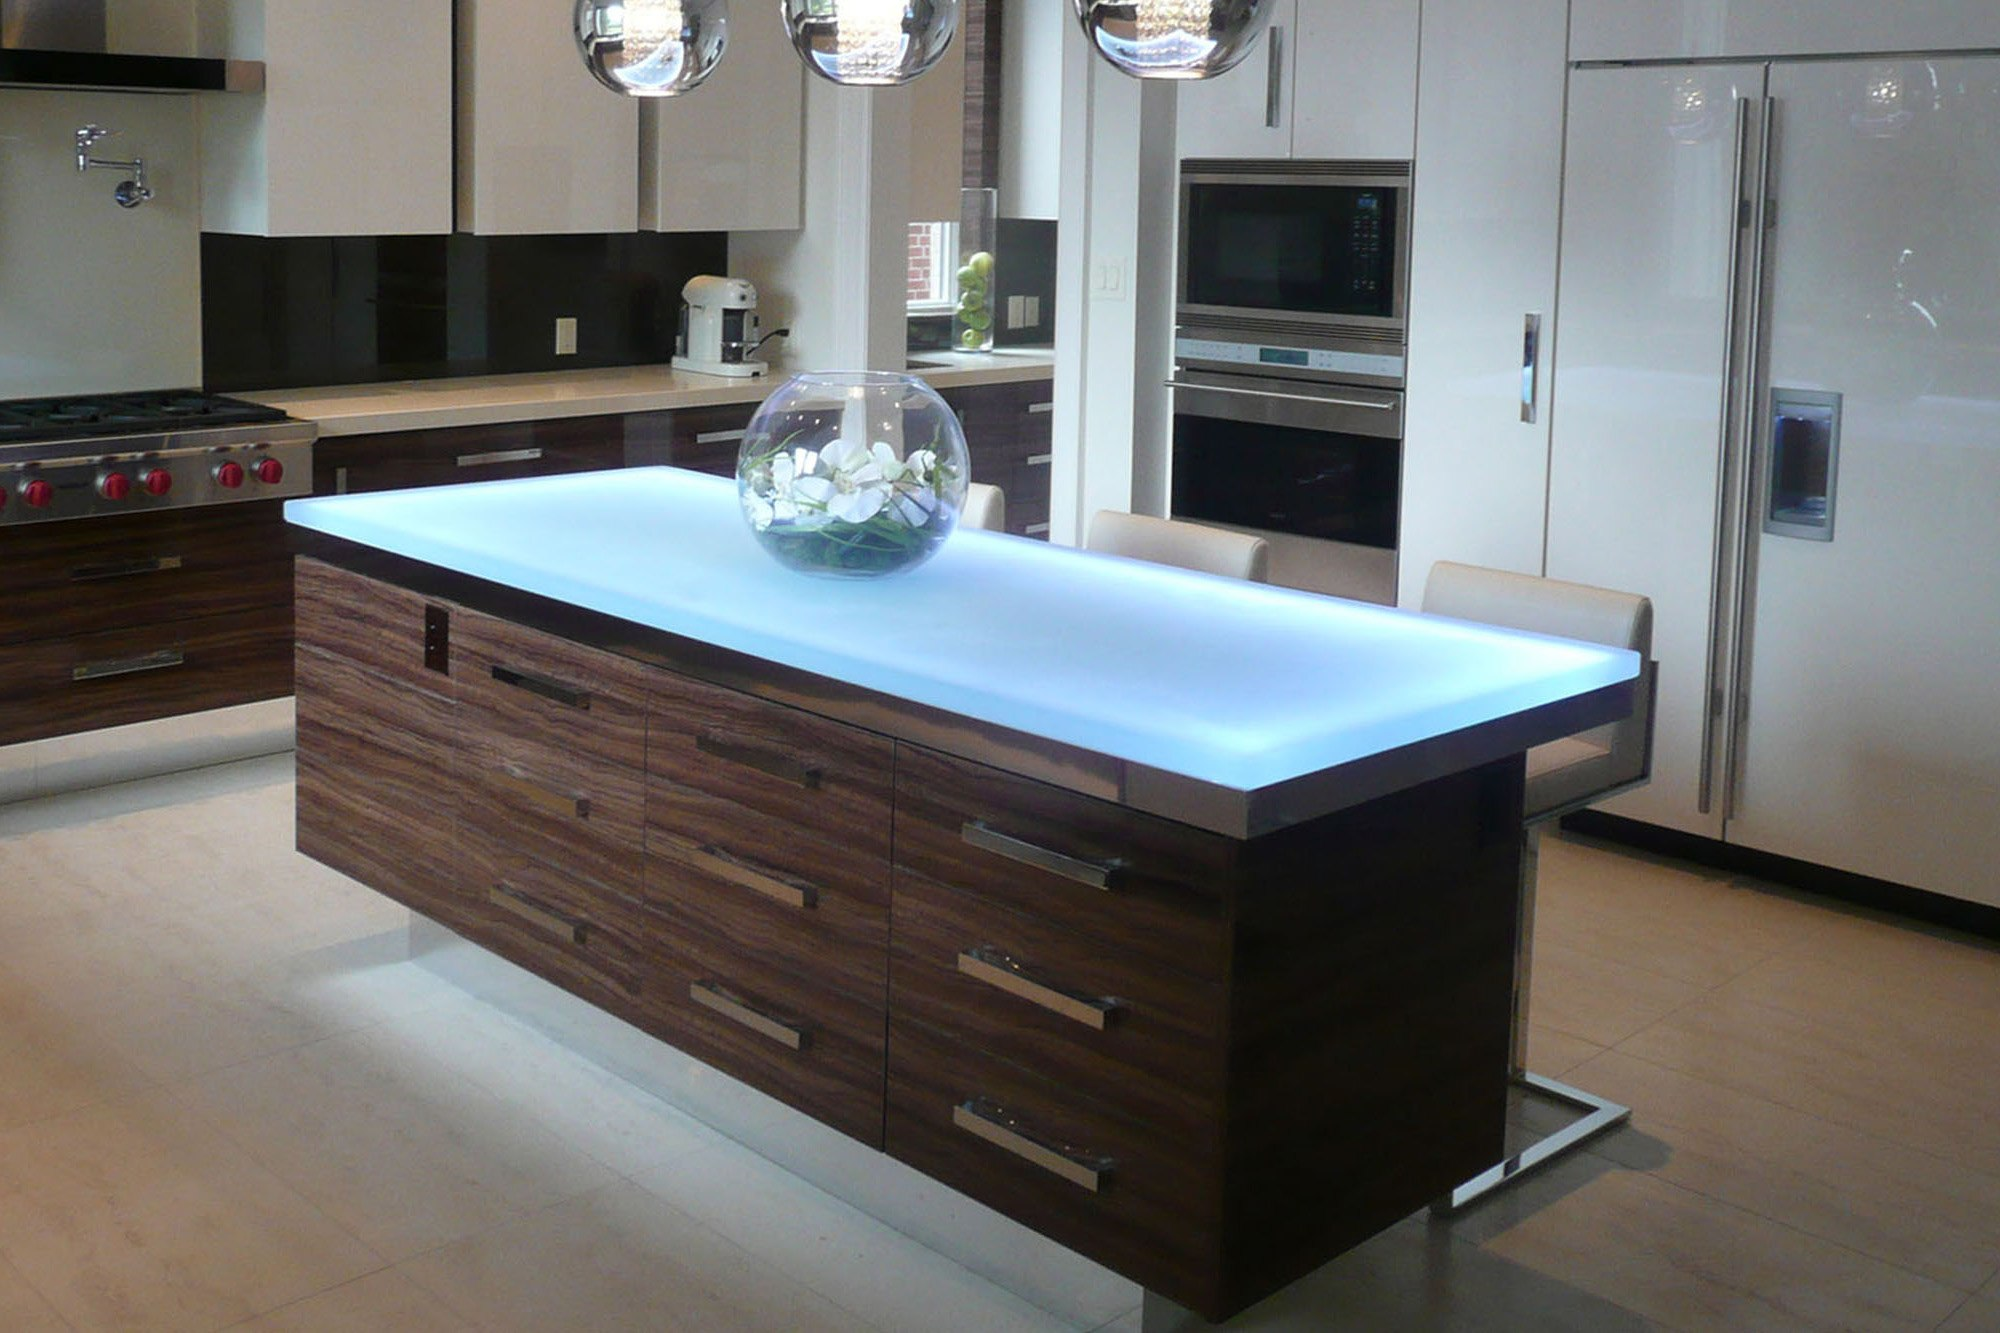 The Ultimate Luxury Touch For Your Kitchen Decor - Glass ... on Counter Top Decor  id=12298